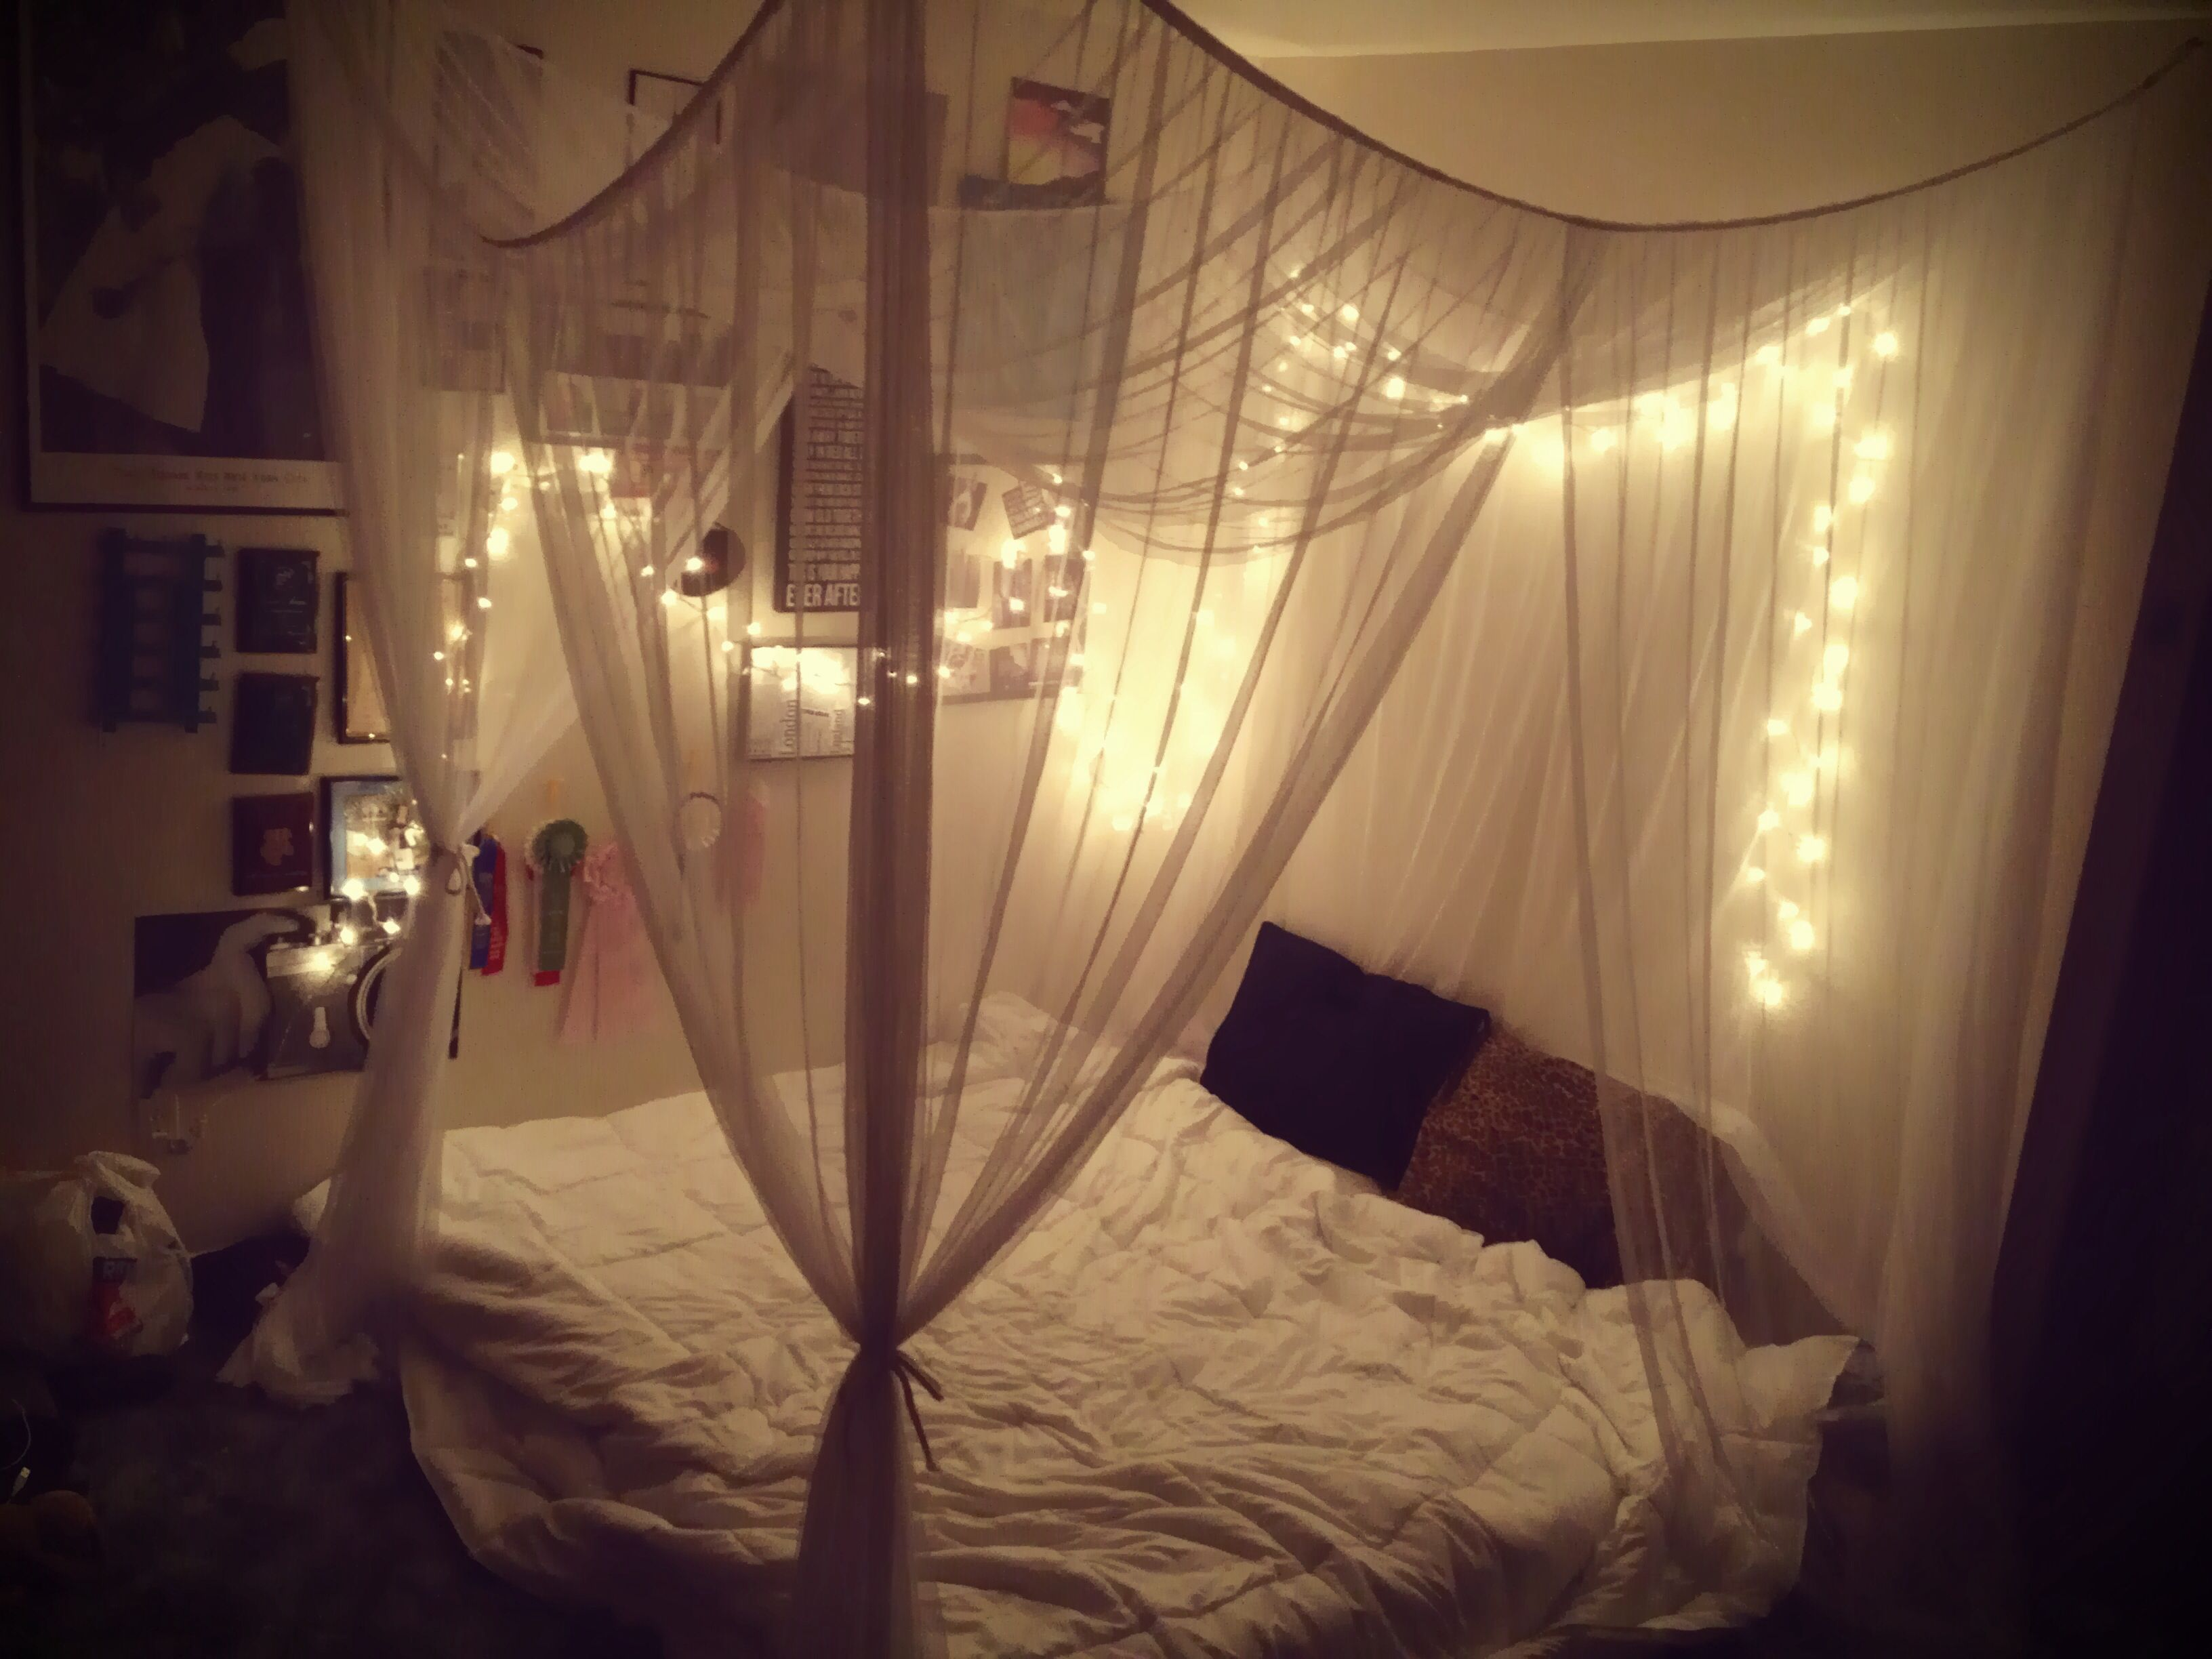 Fairy lights bedroom tumblr - Bedroom With Lighted Canopy Tumblr Bedroom Canopy Twinkle Lights